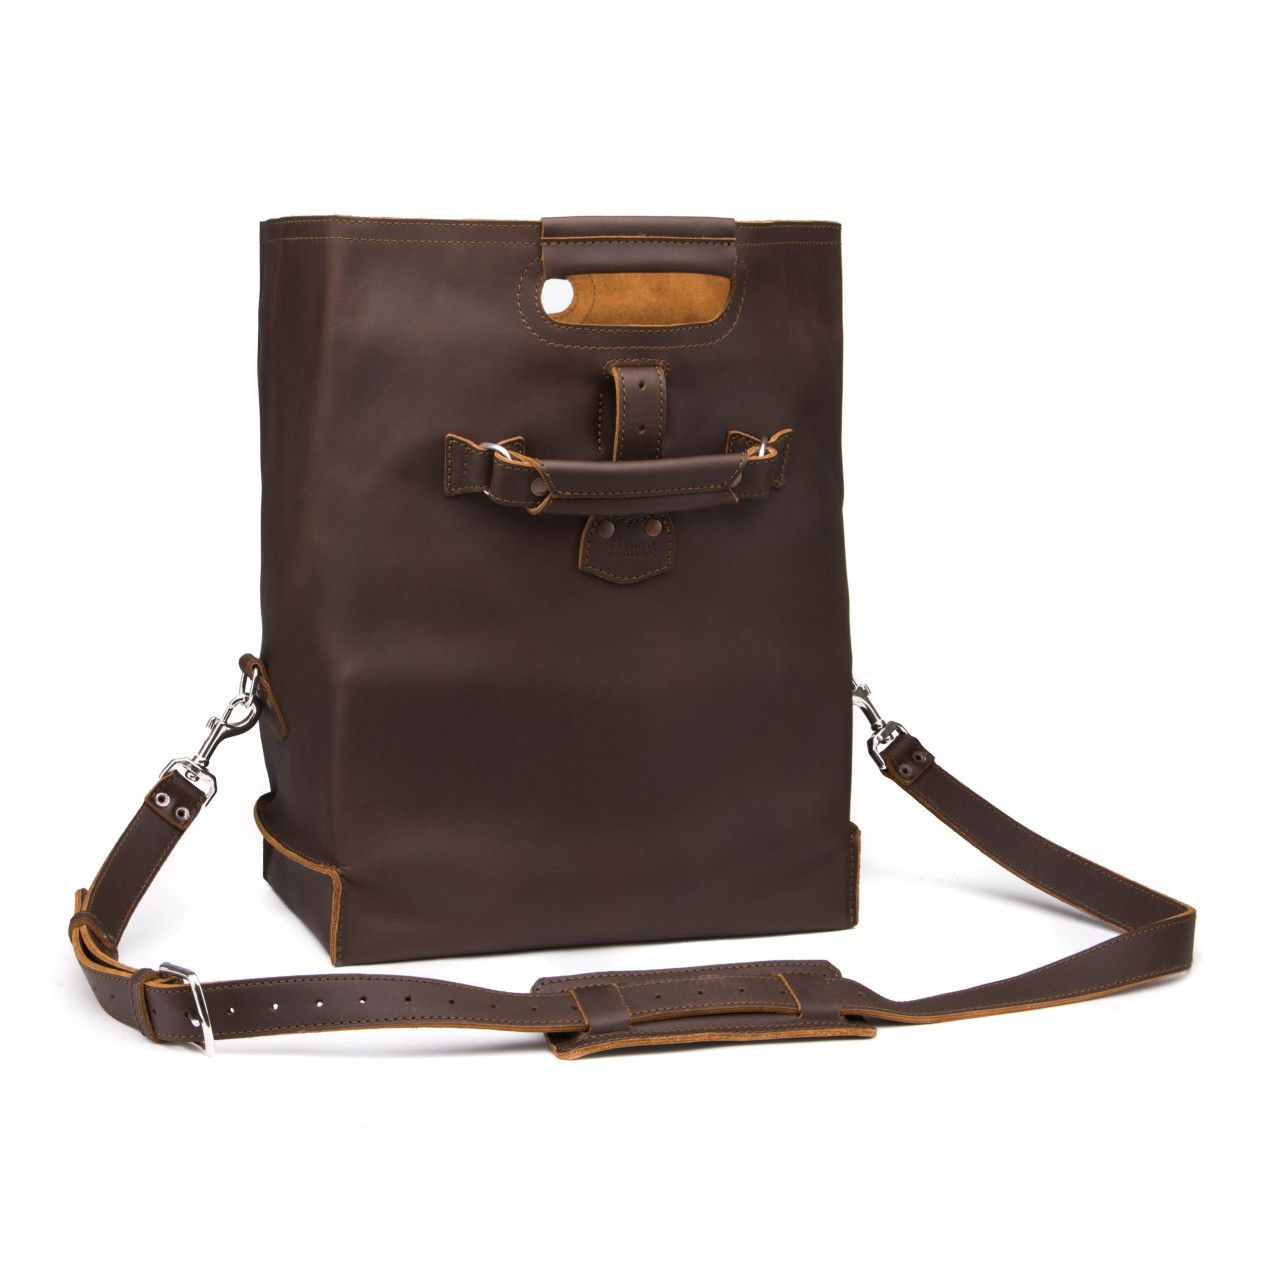 leather overnight bag large in dark coffee brown leather